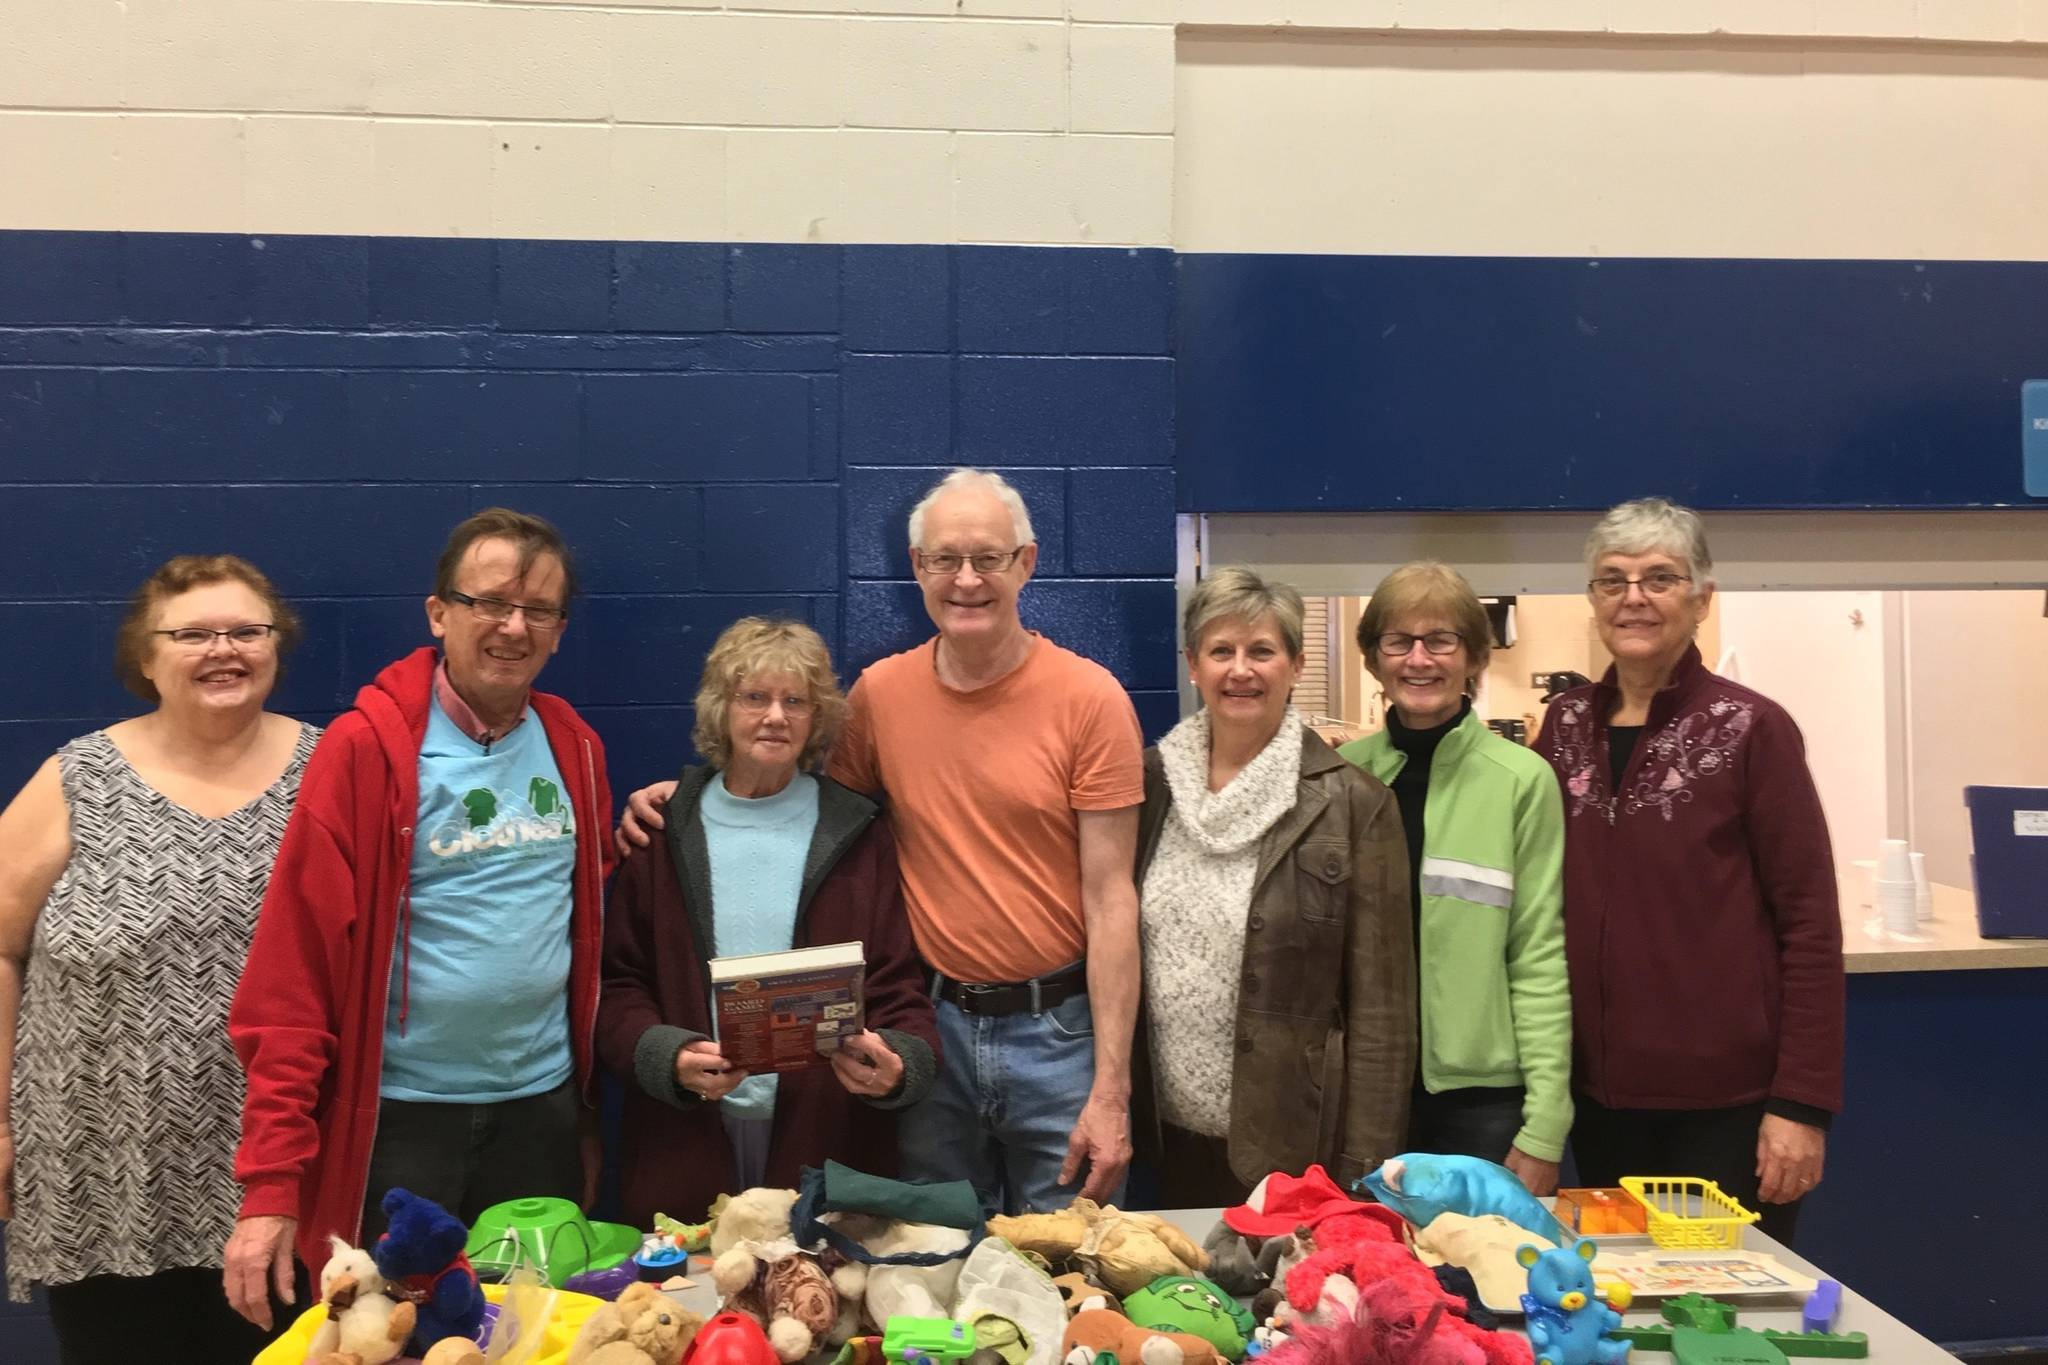 Founder and President of Clothes2U, Ernie Jantzen (second from left) and his volunteers, Deby, Verna, John, Jenny, Linda and Maria (left to right) pose at Nicomekl Elementary in Langley for their giveaway (Photo by Kieran O'Connor/Black Press Media)